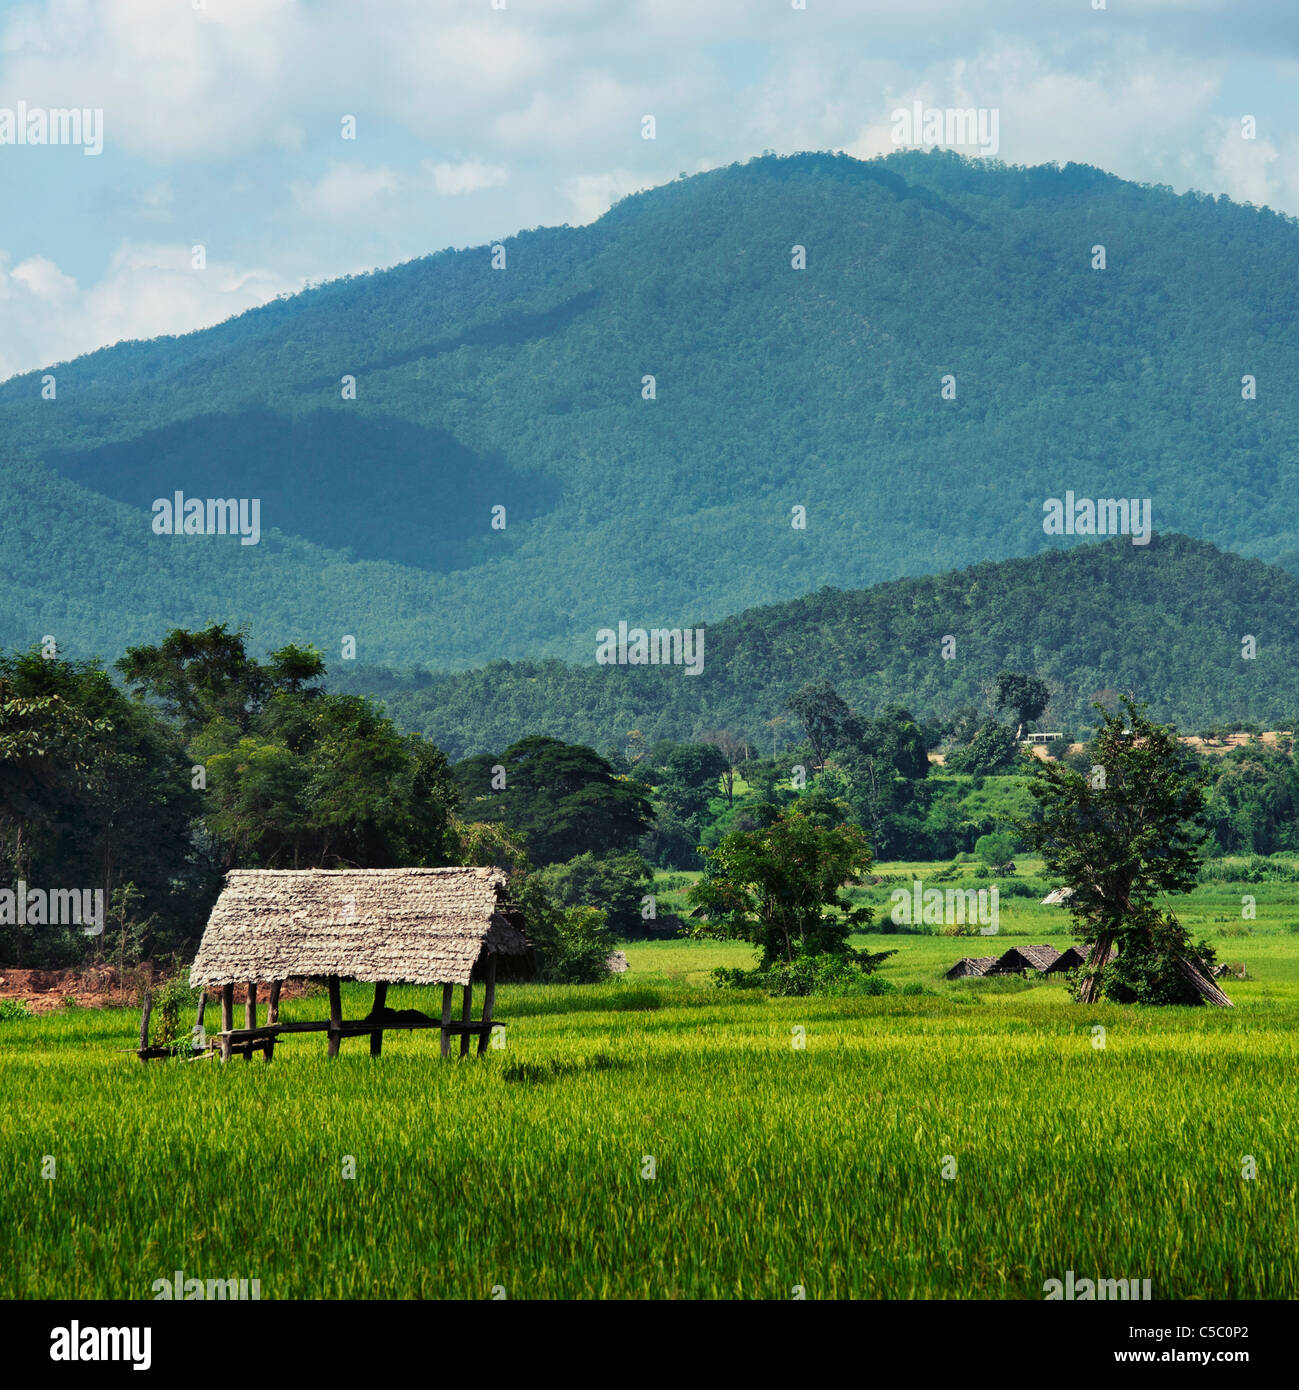 A Wooden Shelter In A Mountainous Area; Mae Hia, Chiang Mai Province, Thailand - Stock Image